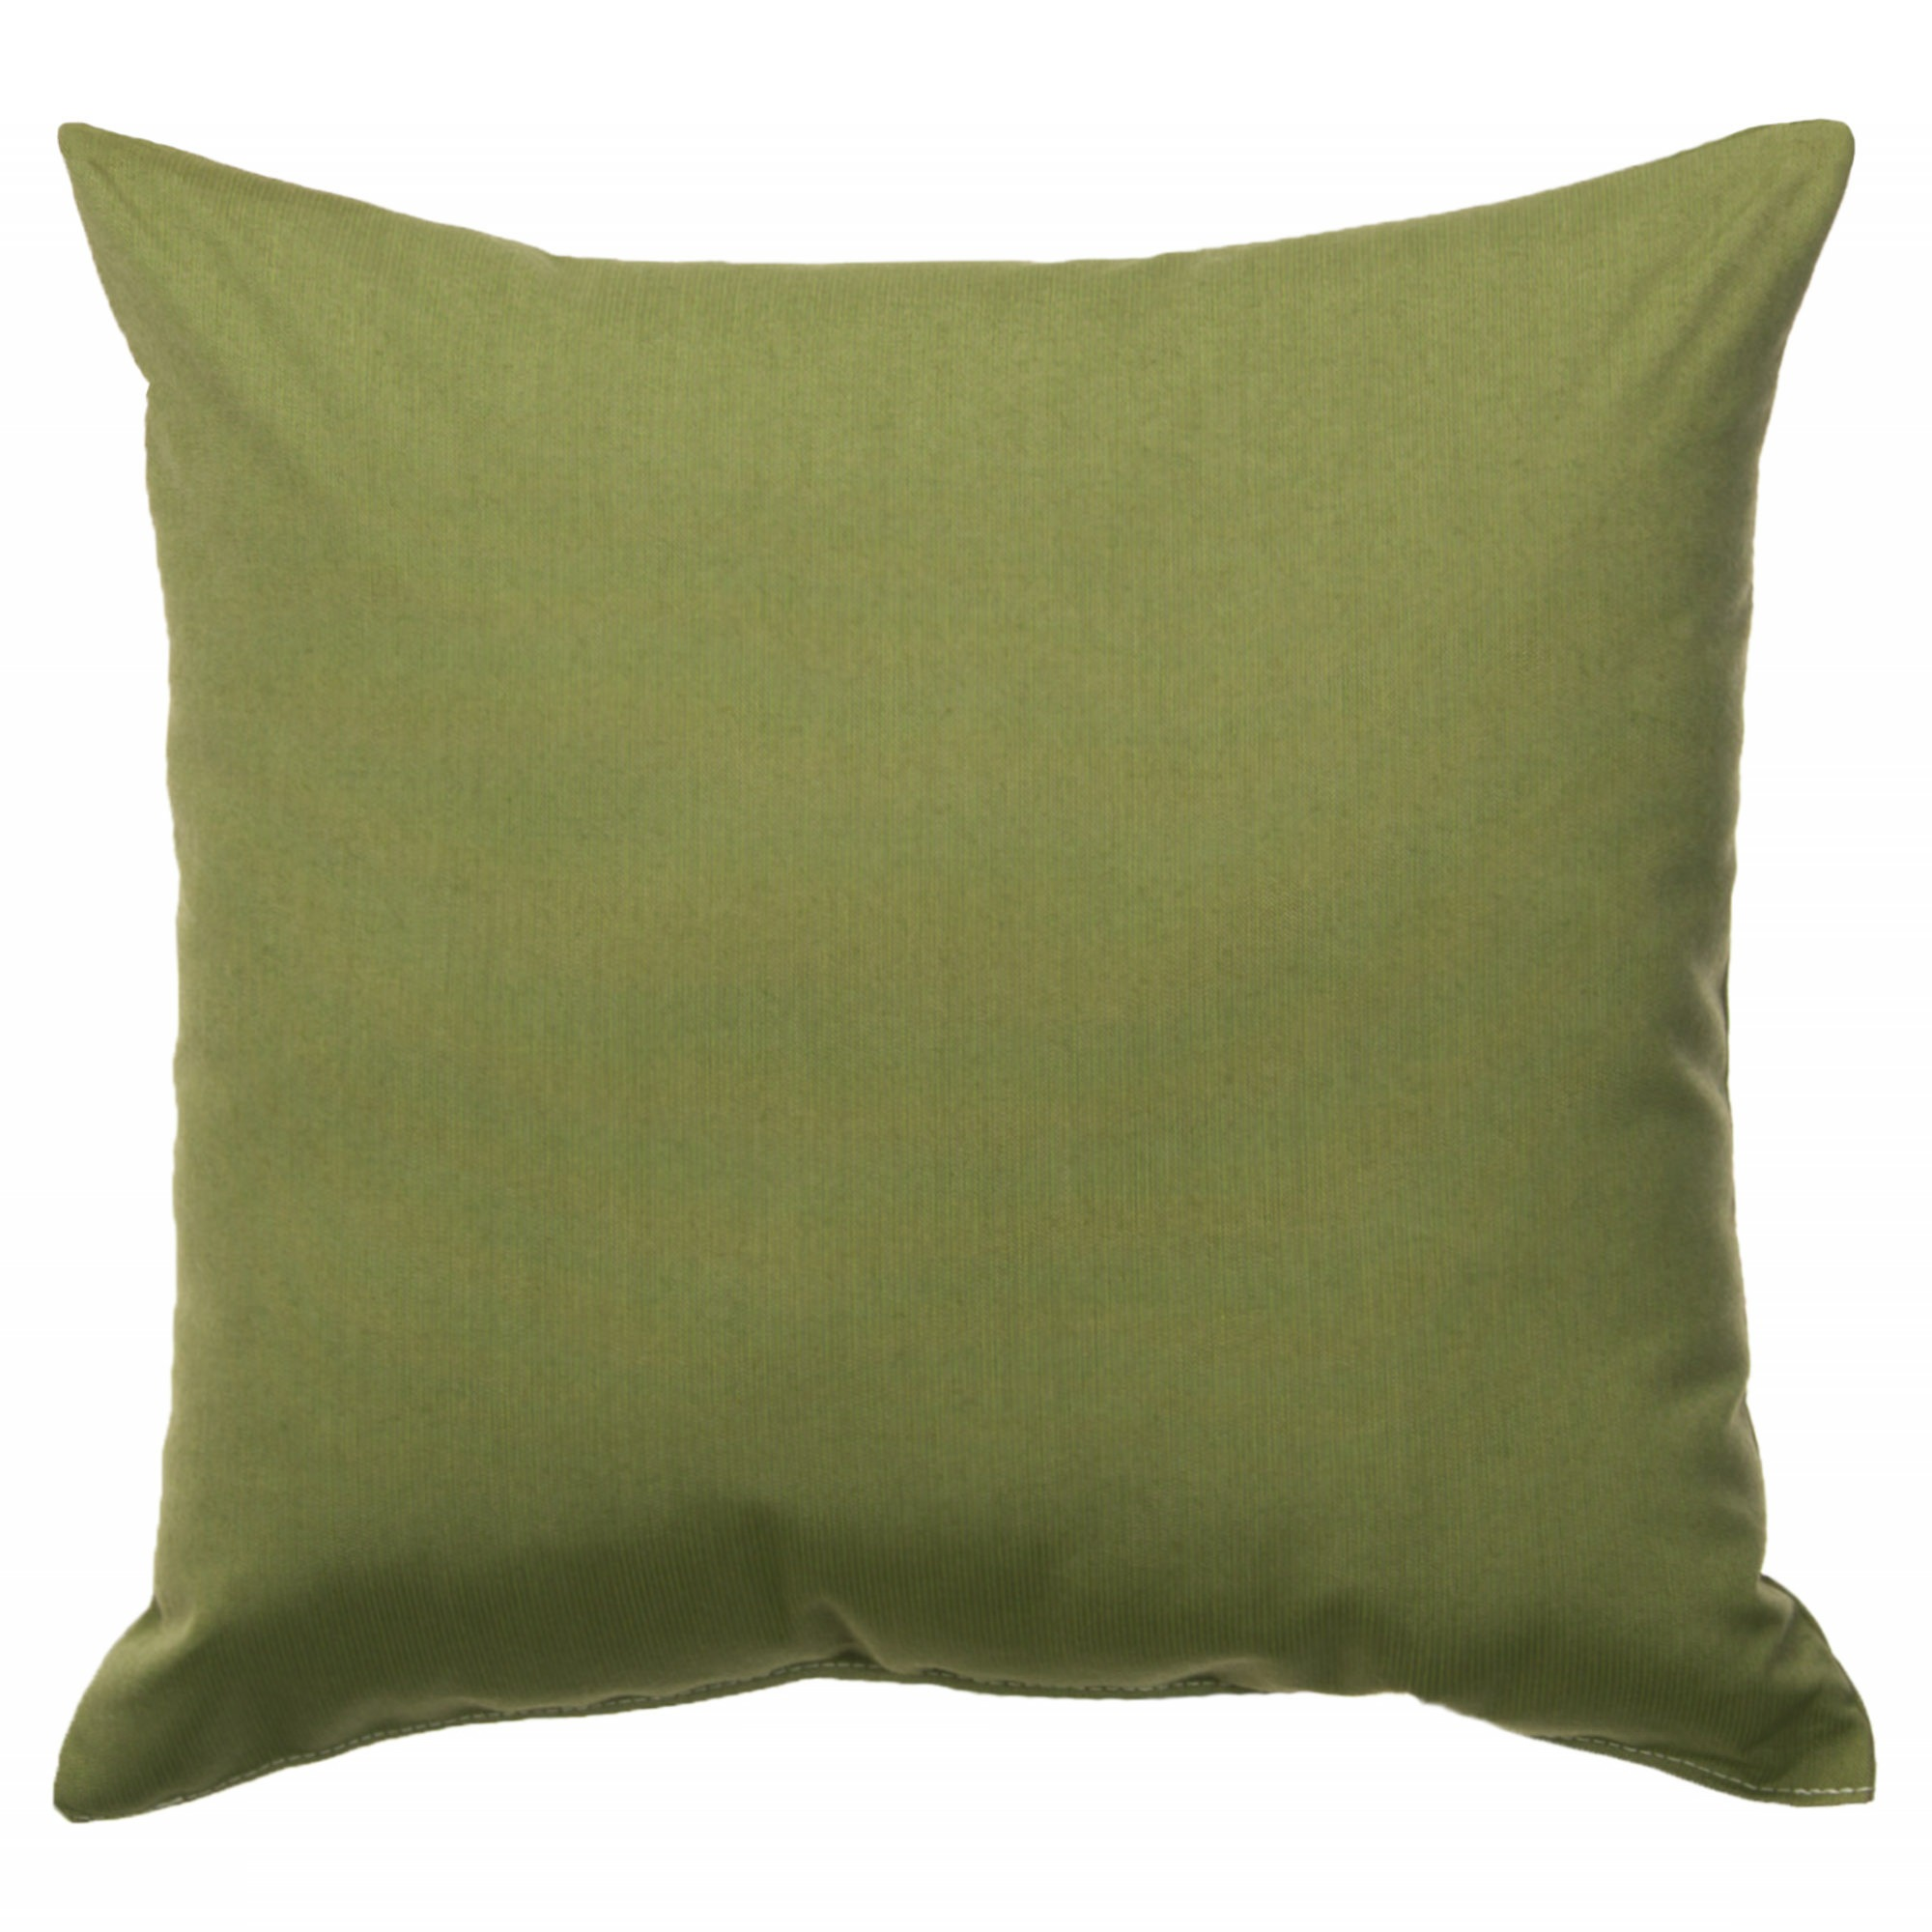 Spectrum Cilantro Sunbrella Outdoor Throw Pillow